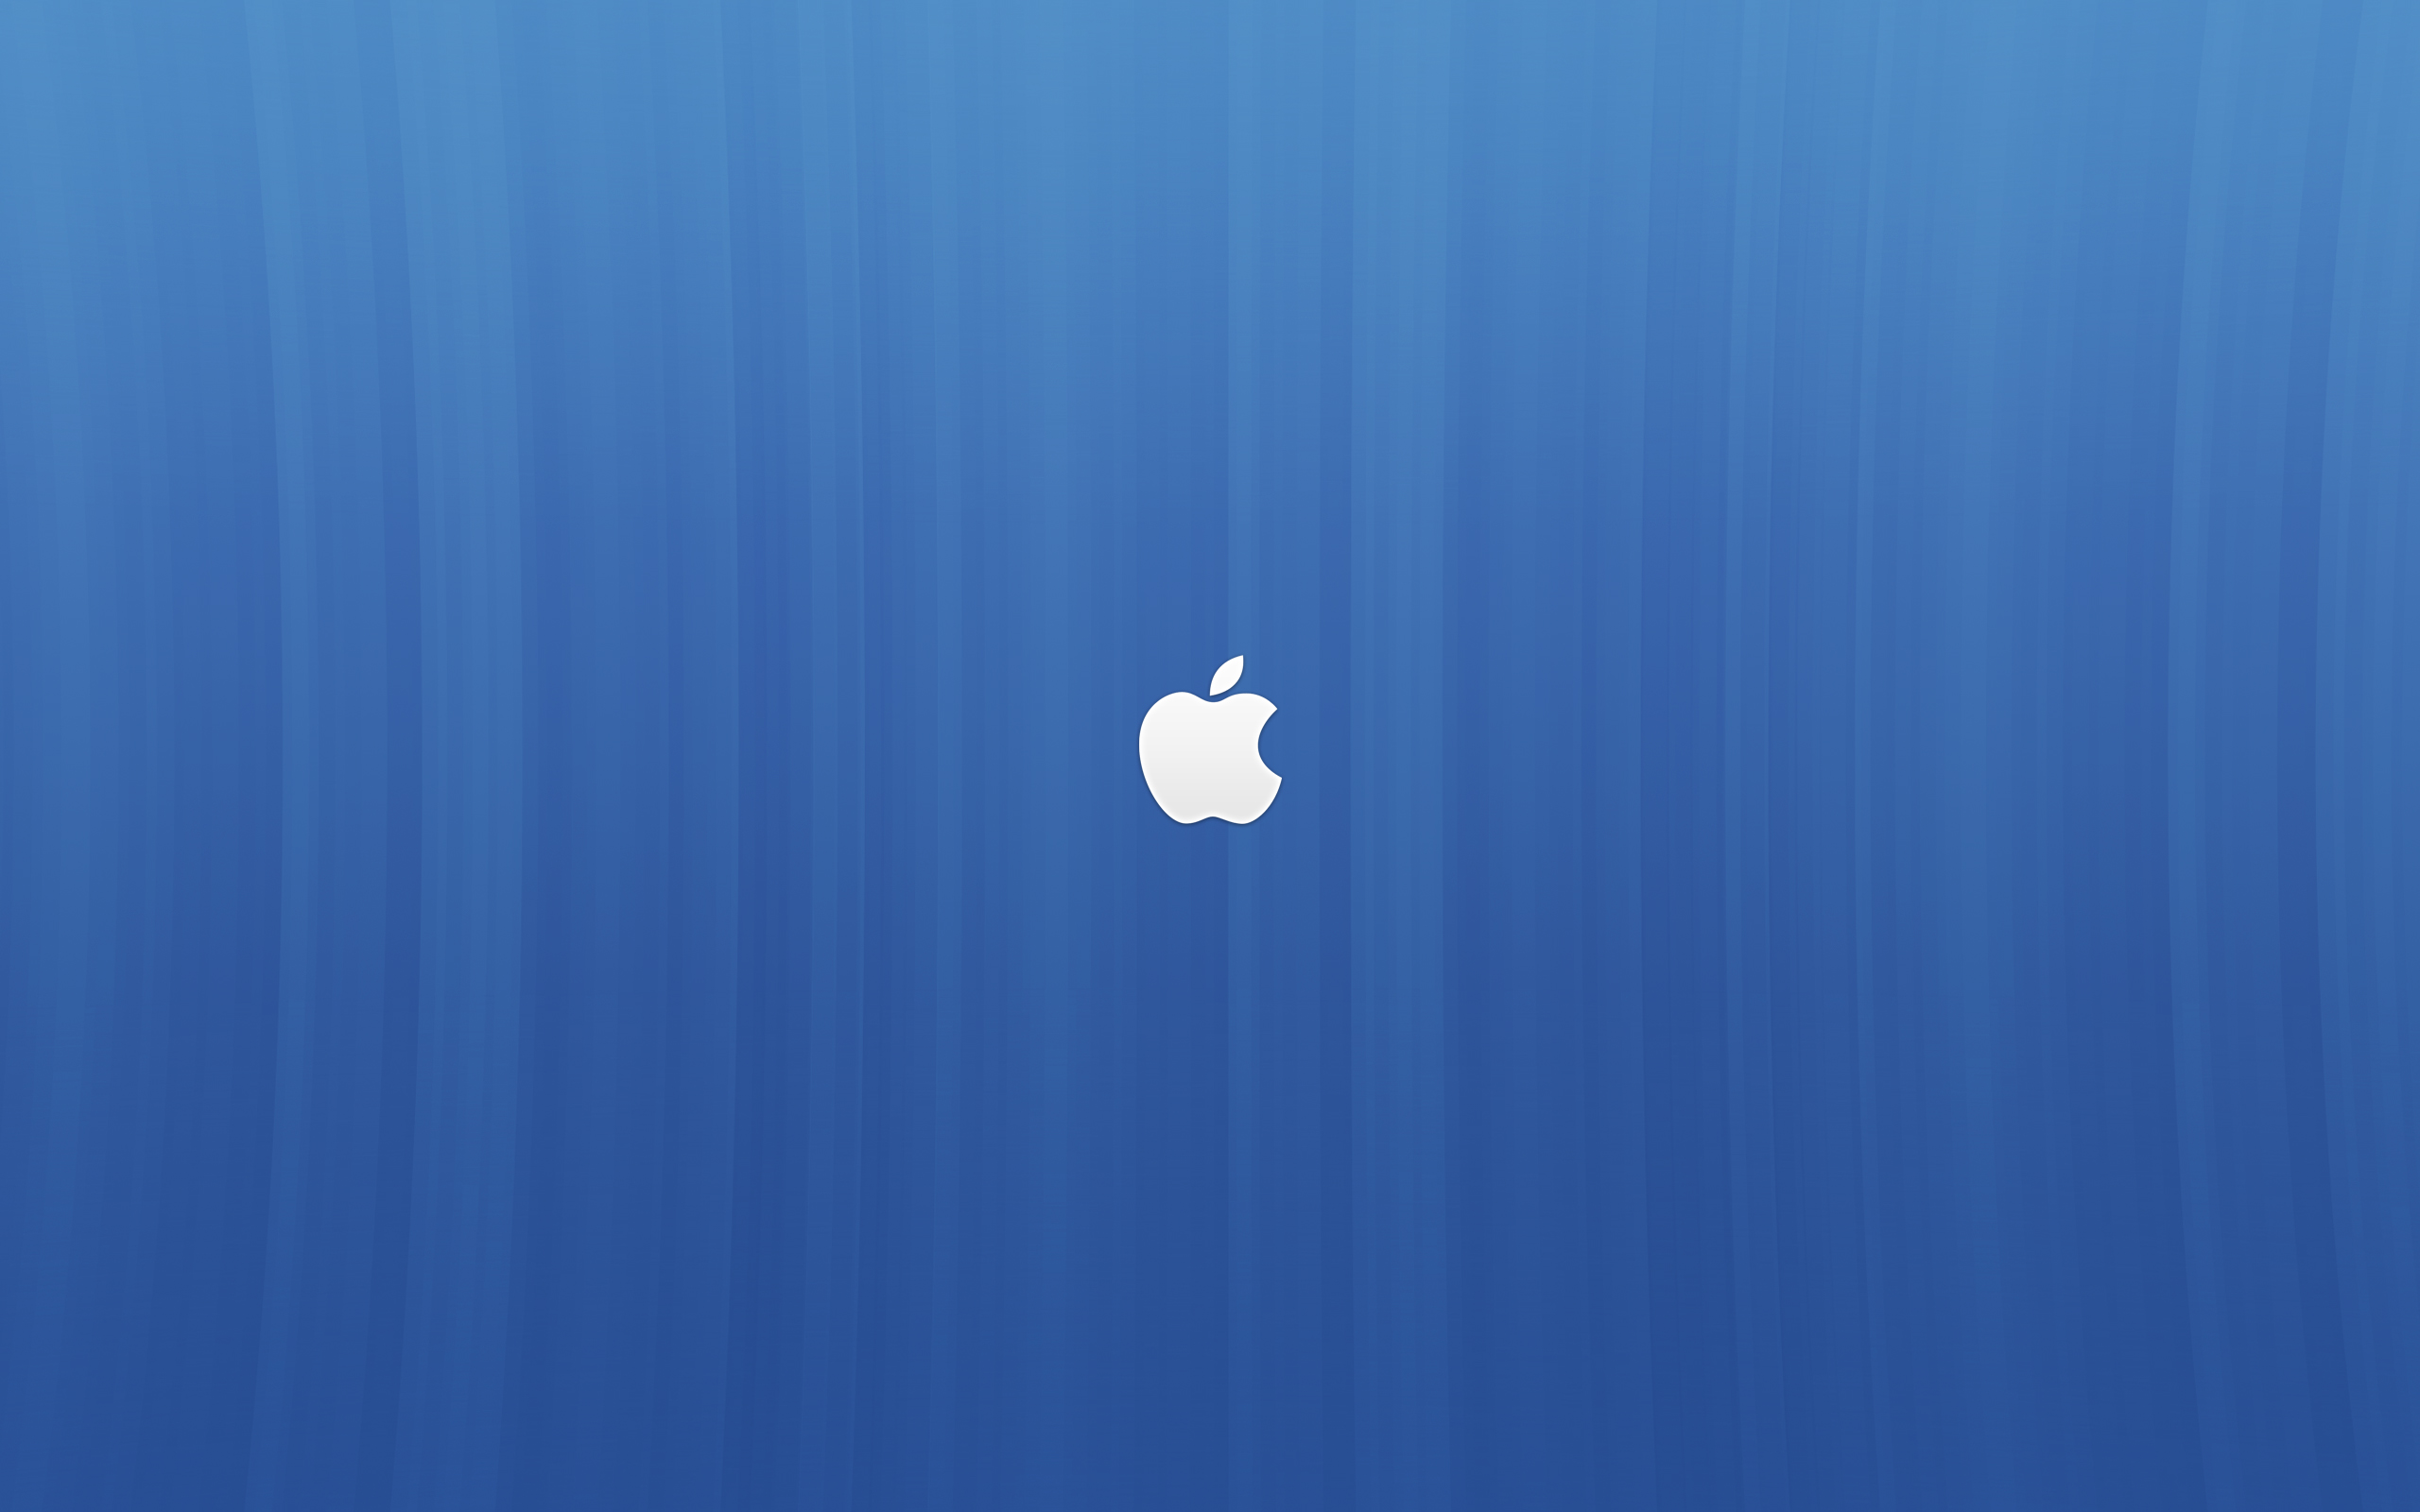 blue apple logo hd - photo #16